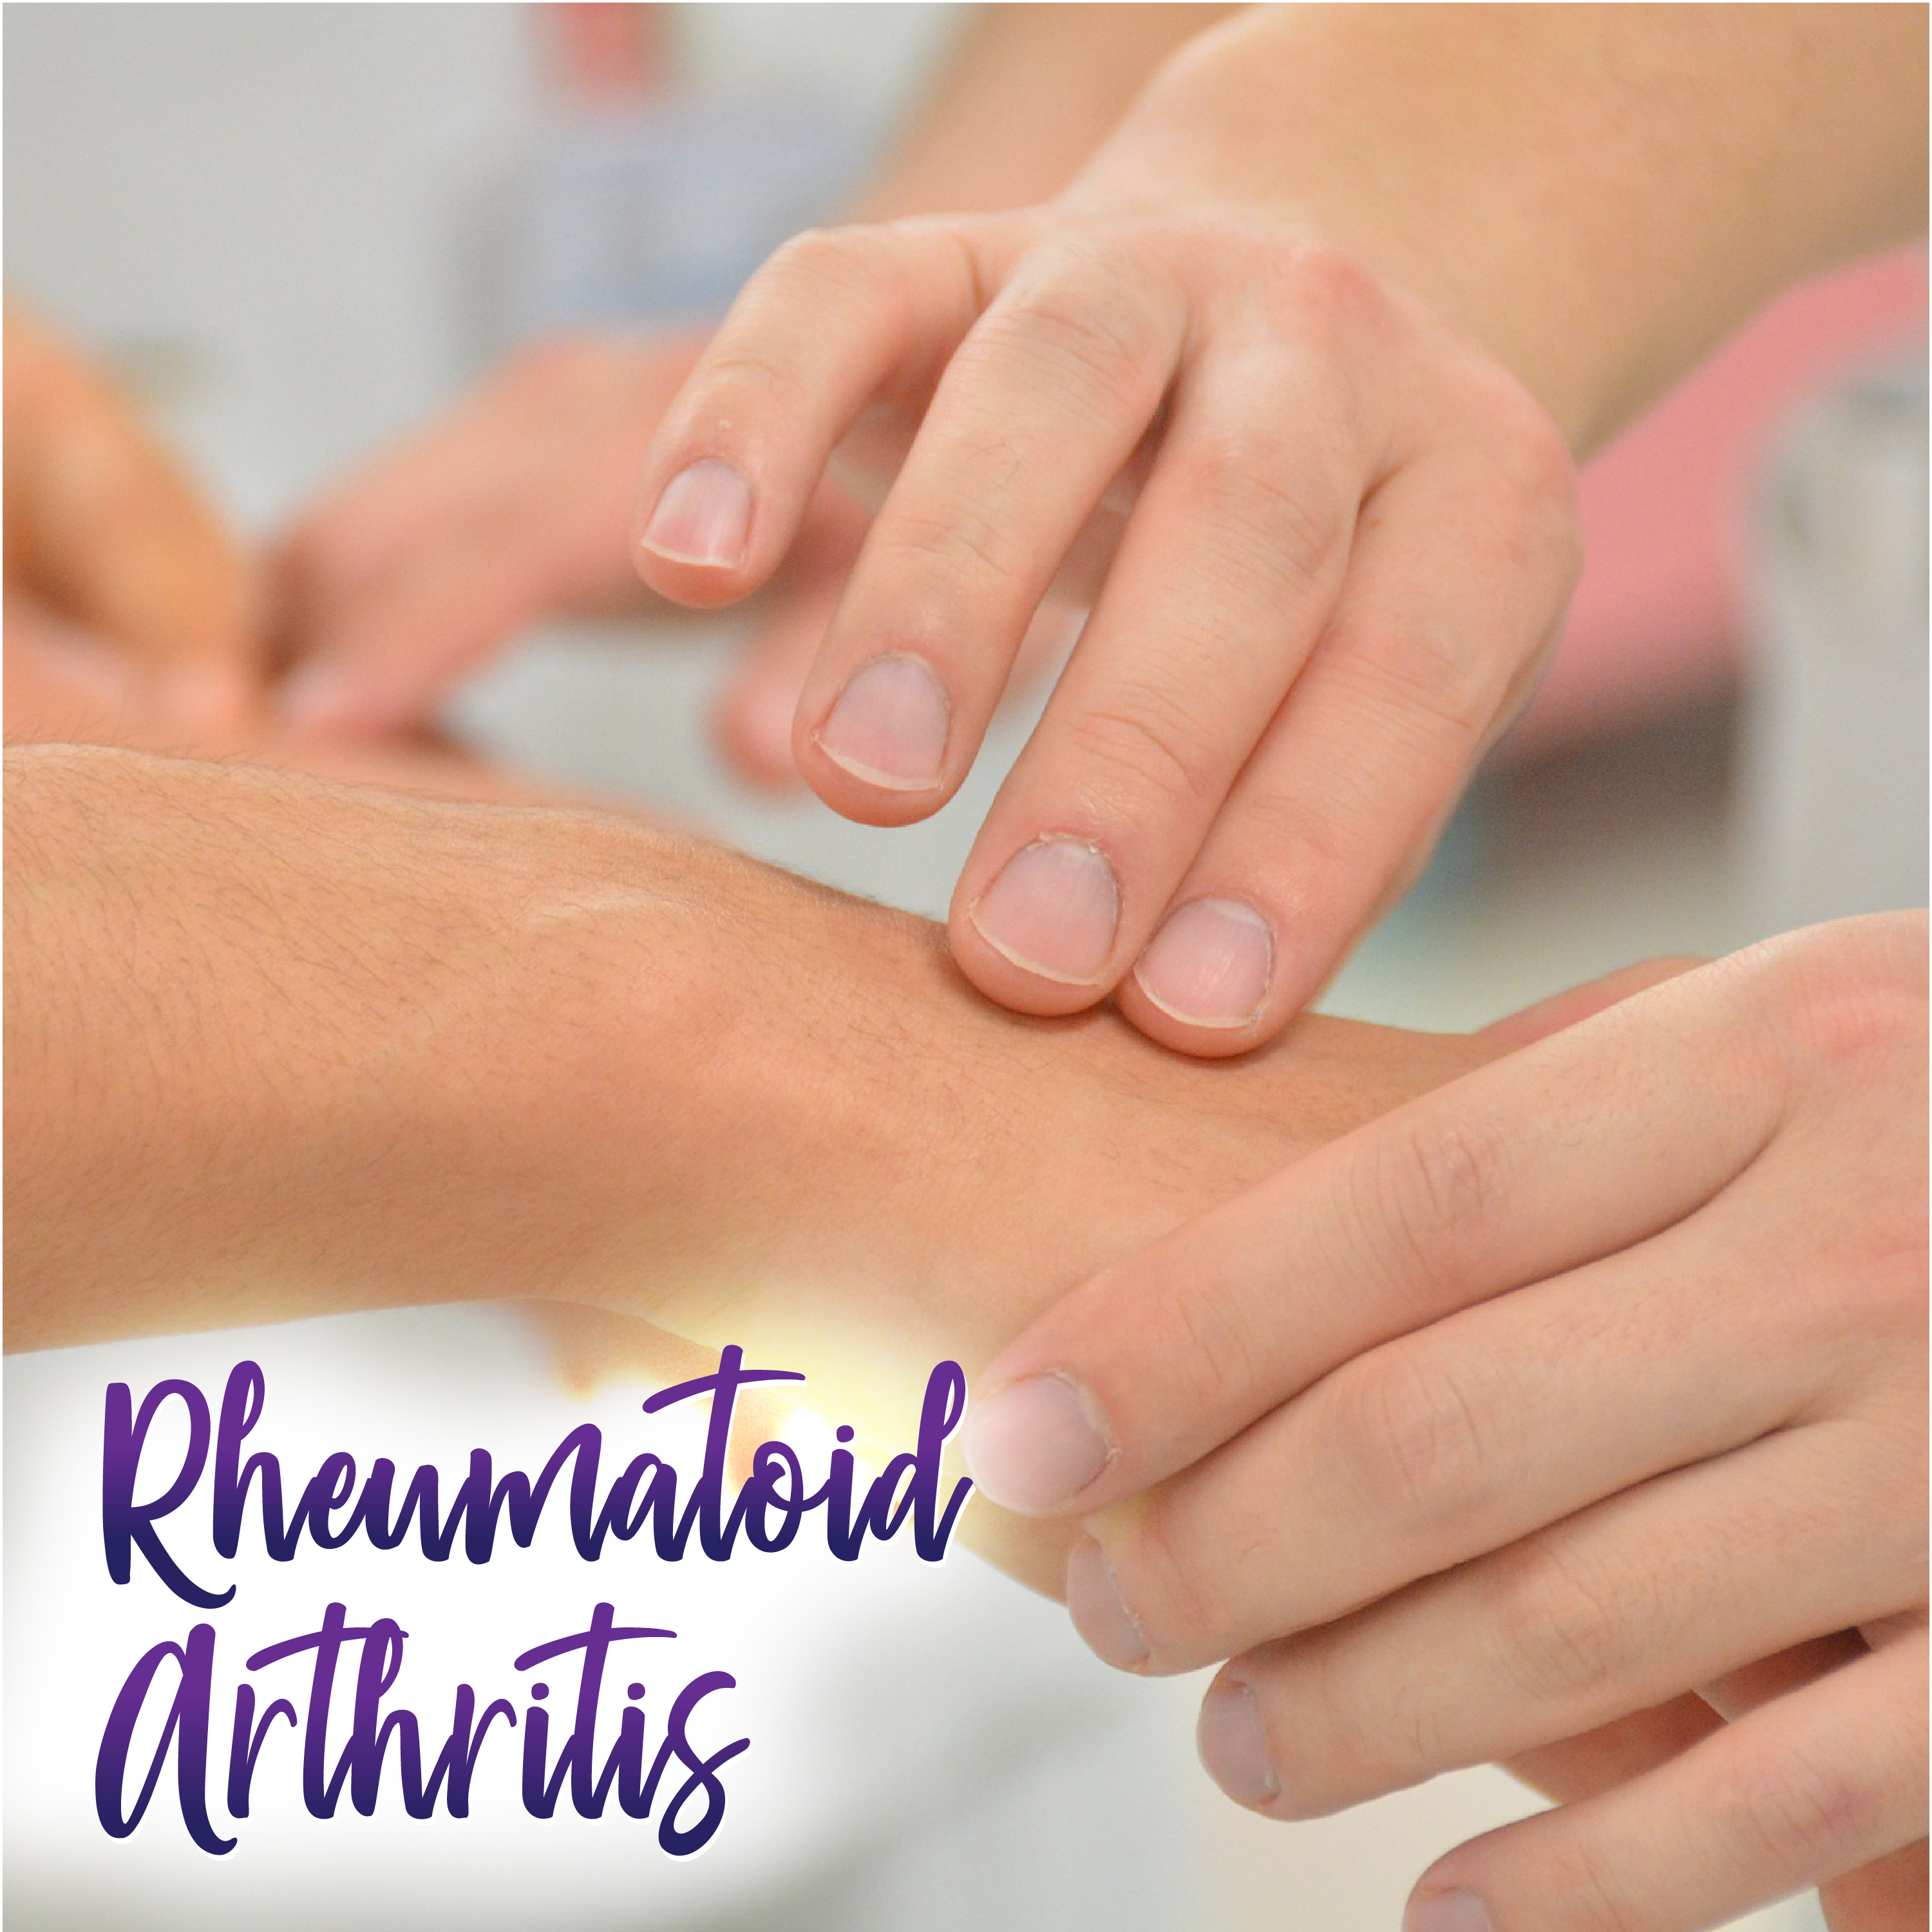 Arthritis' Natural Supplements